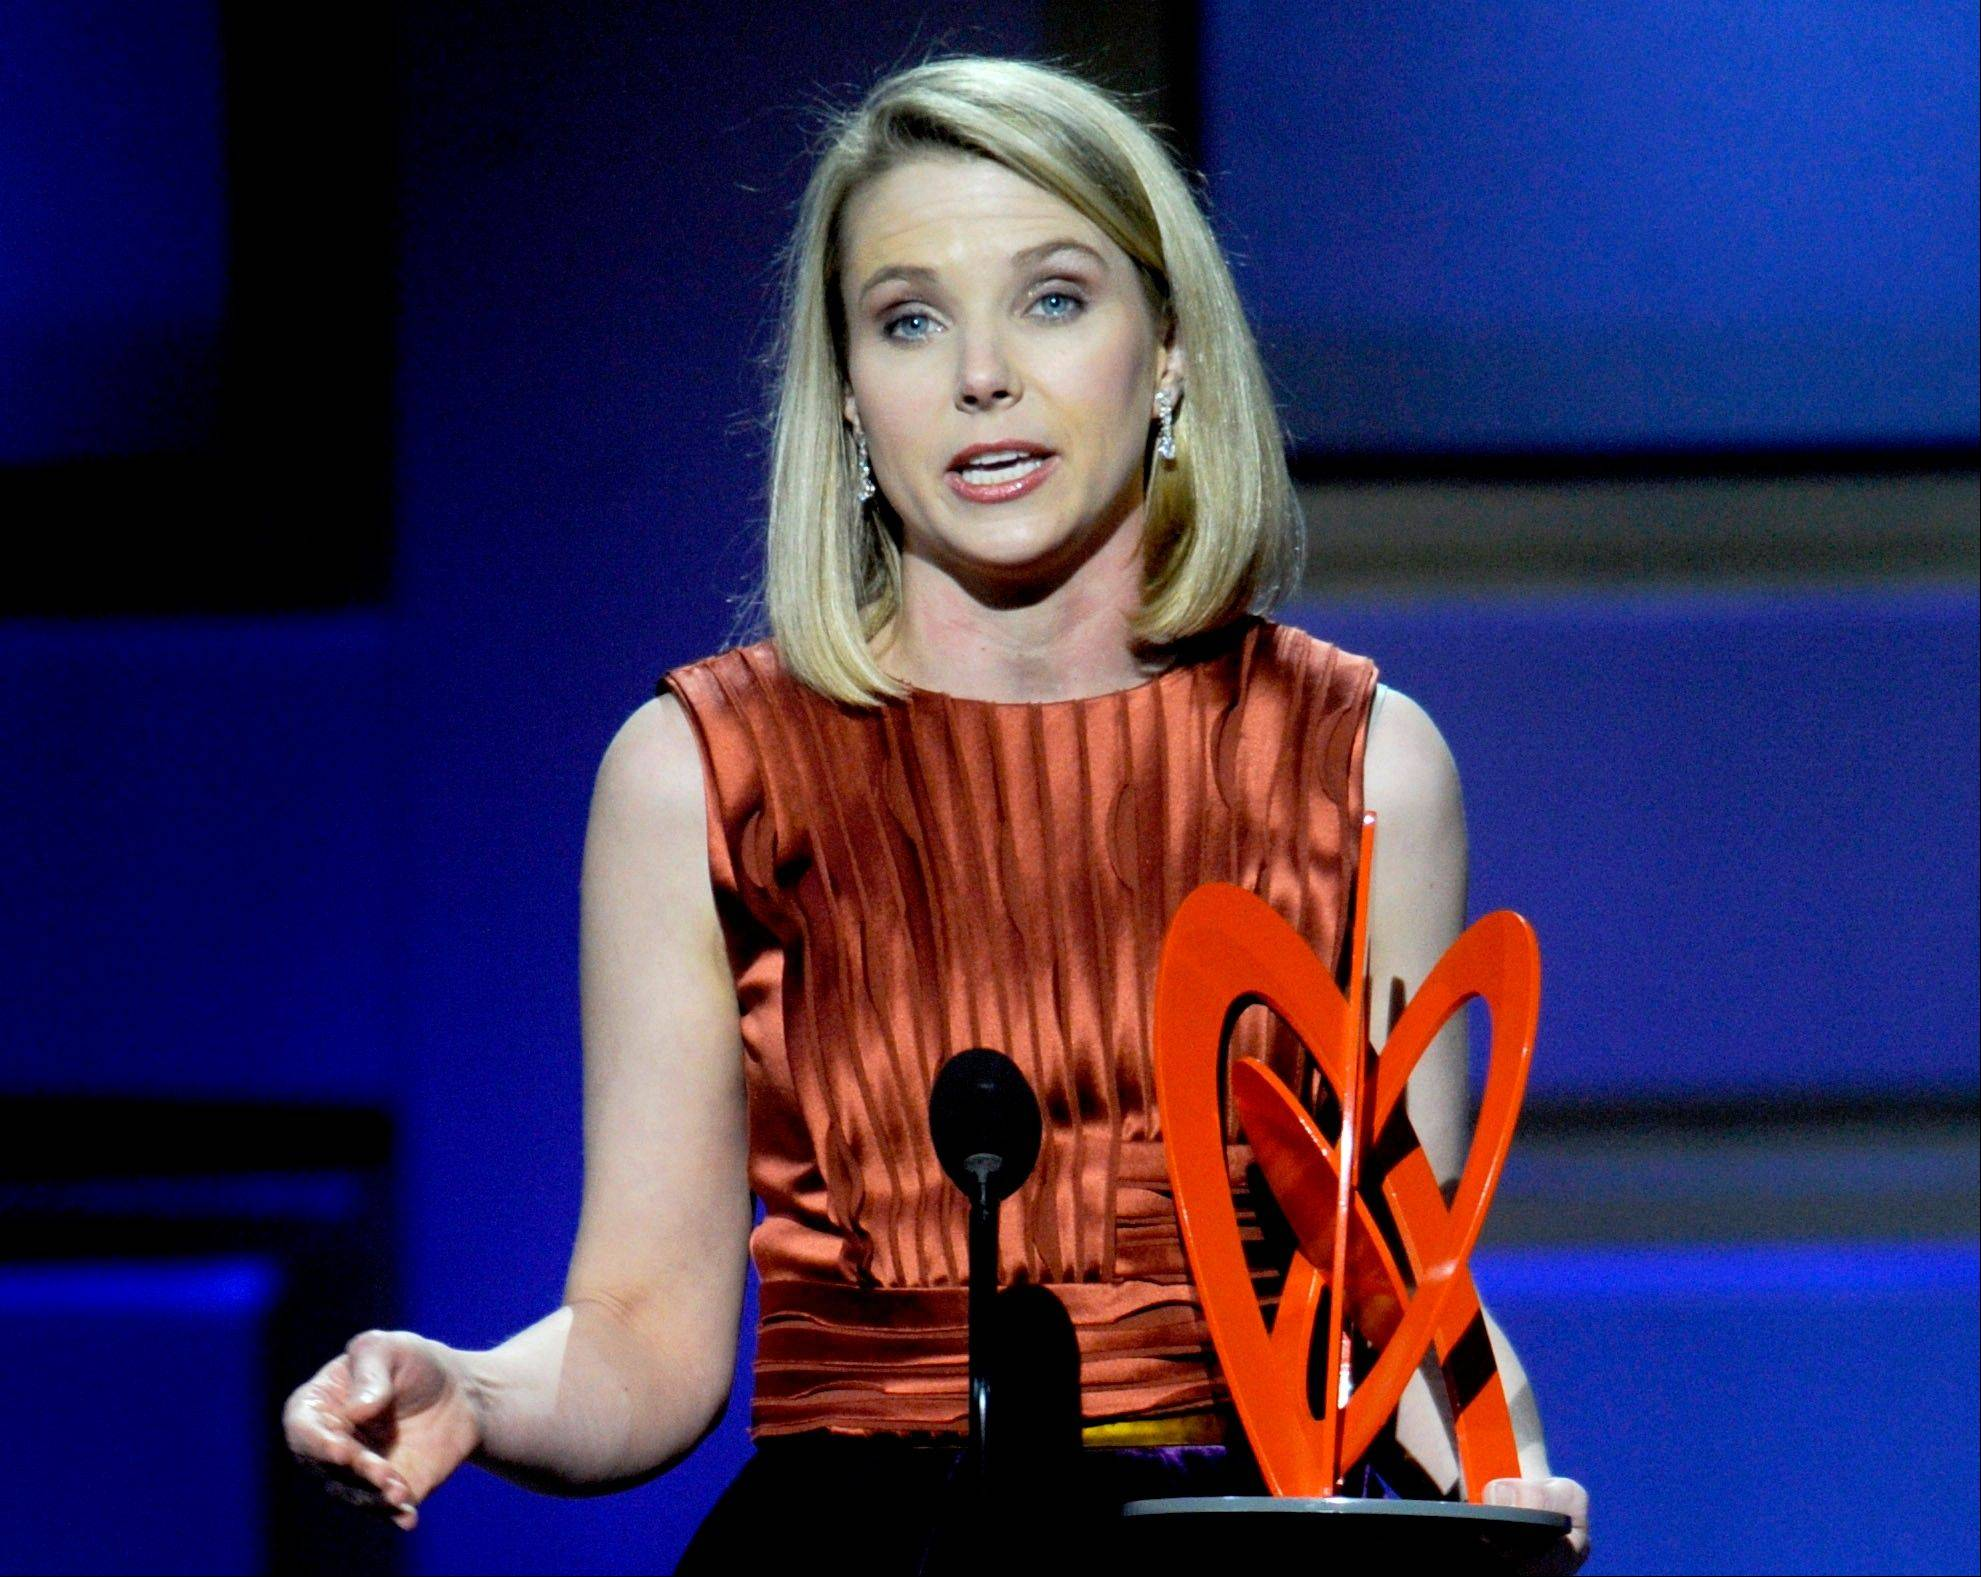 Marissa Mayer, who was named Yahoo Inc.�s CEO on July 16, accepts her award at Glamour magazine�s 2009 Women of the Year awards at Carnegie Hall in New York. Yahoo is giving Mayer a compensation package worth more than $59 million over the next several years.